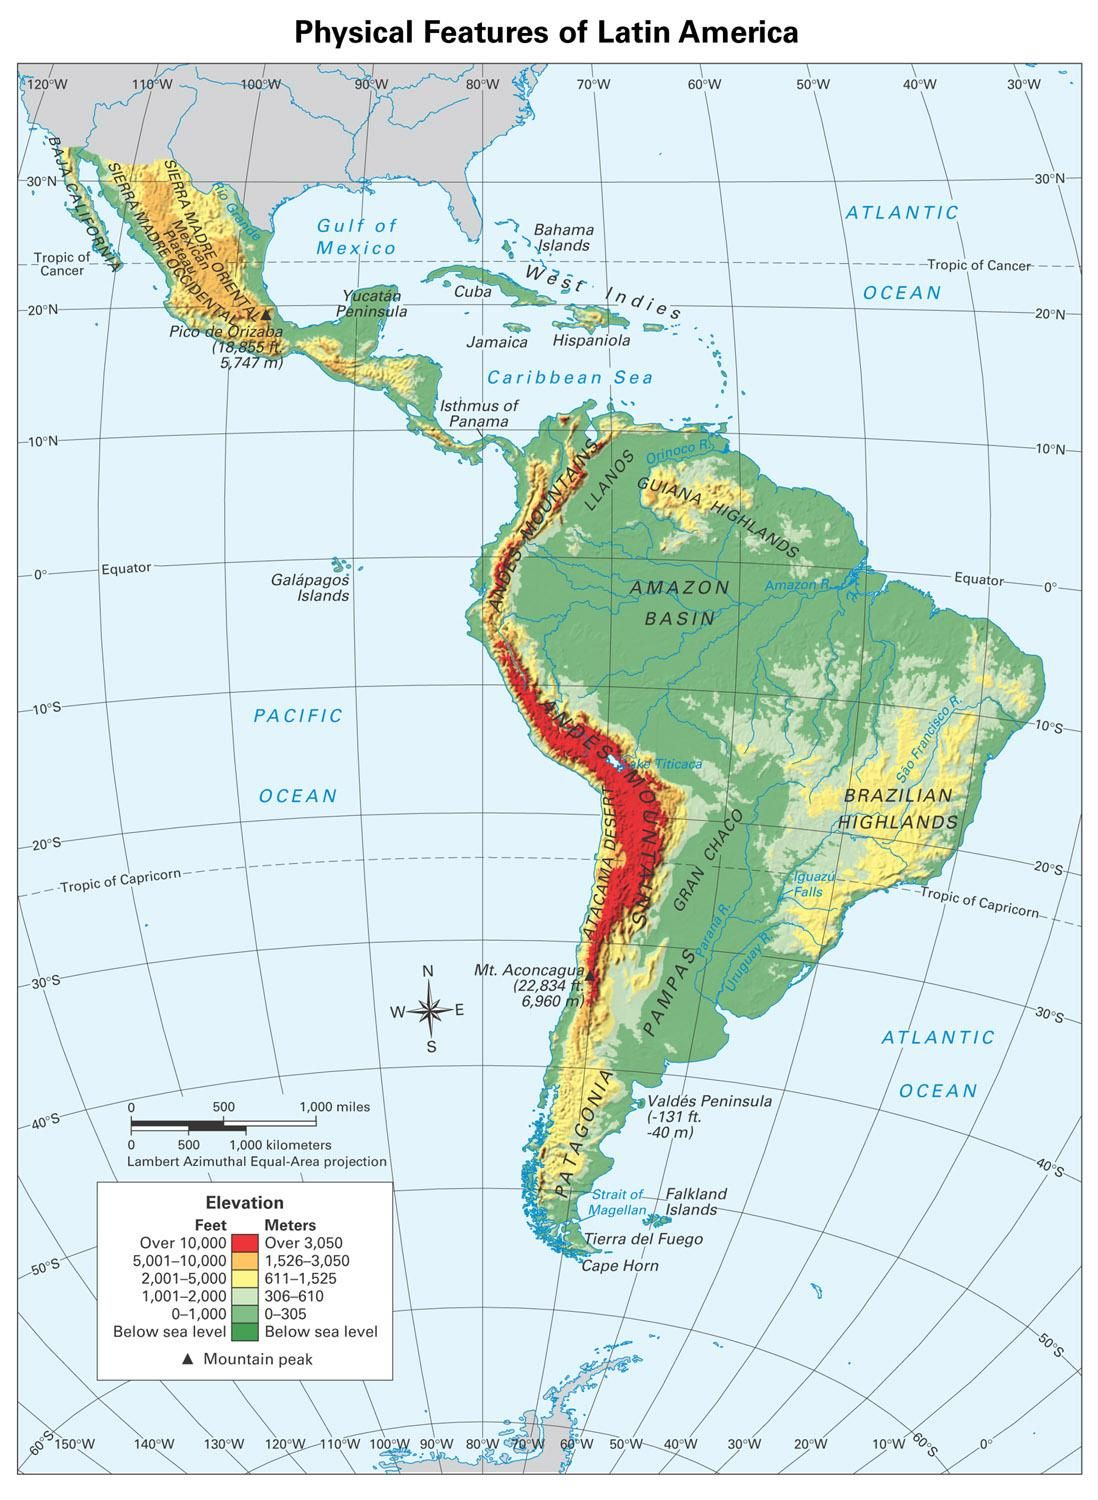 South America Map Physical Features Physical Features of Latin America | Latin america map, Latin